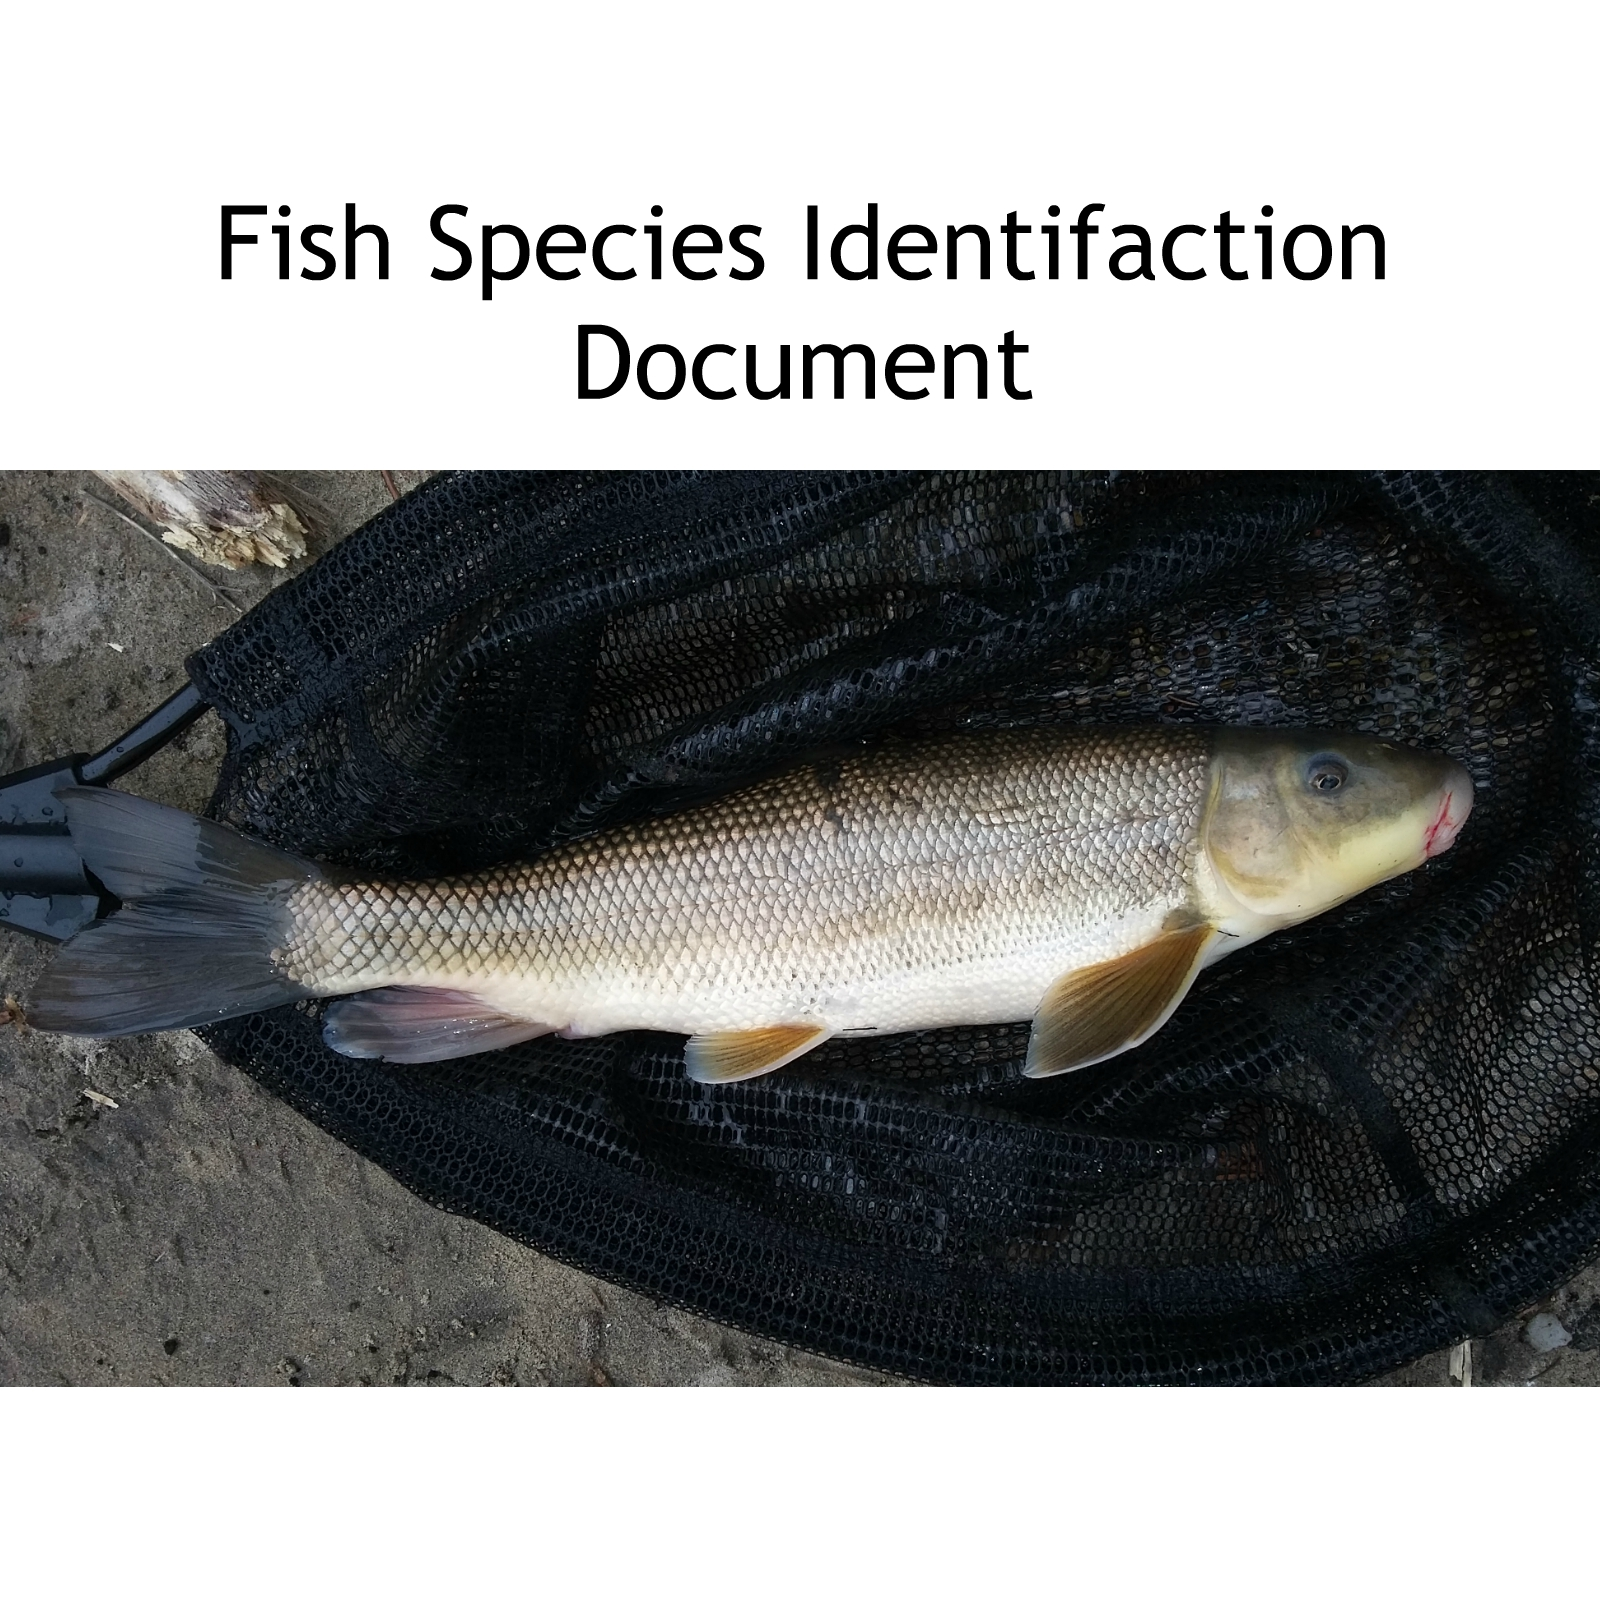 Fish Species Identification Document